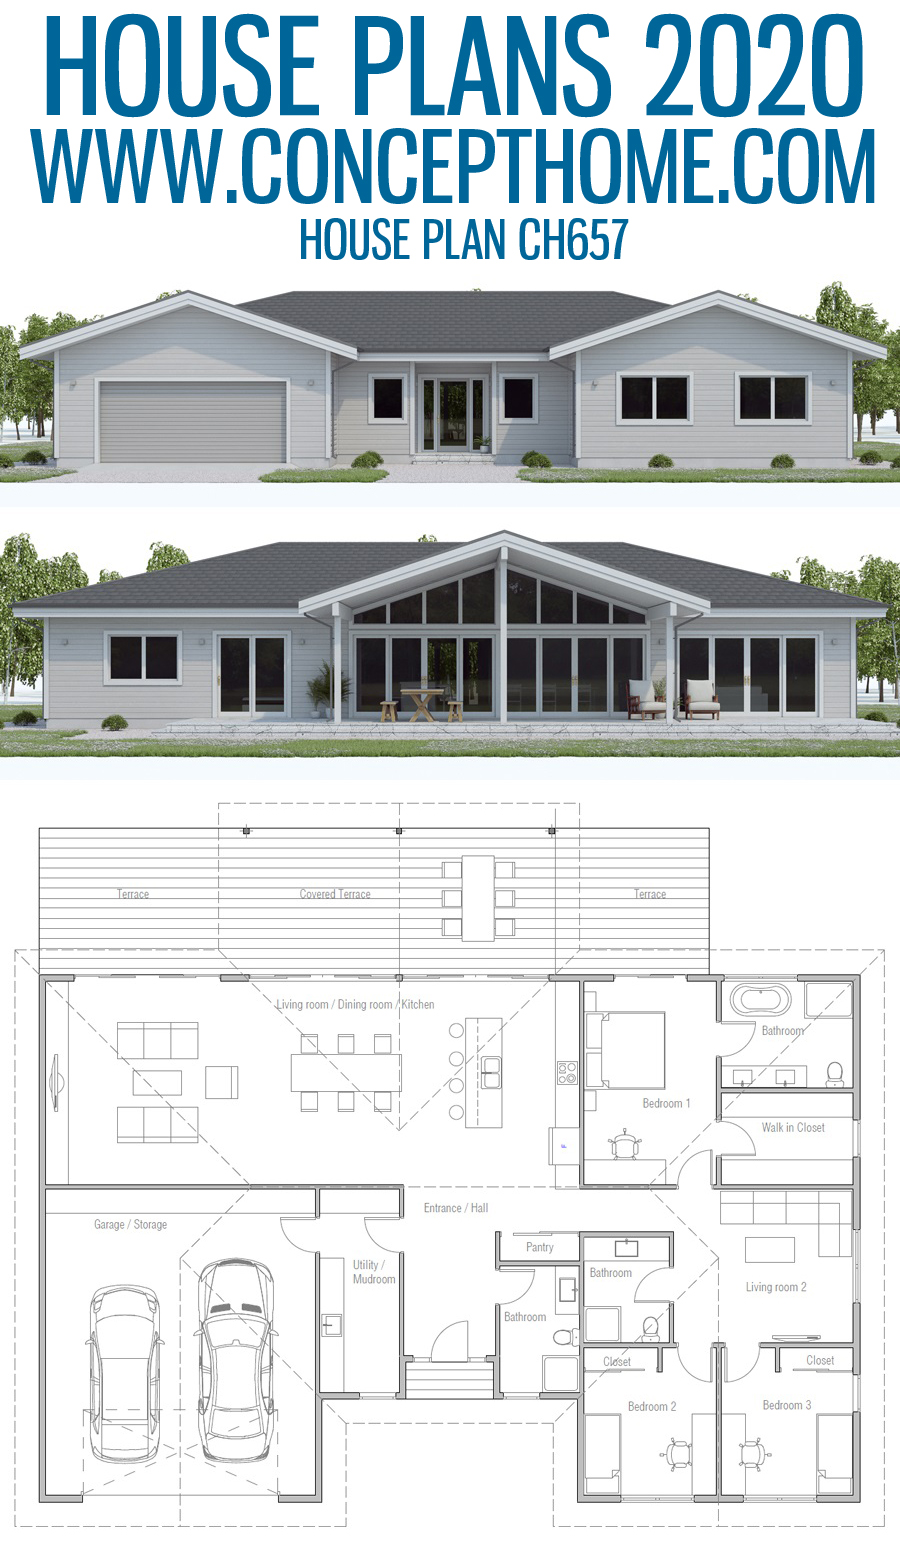 House Plan, Home Plan, Floor Plan, #homeplans #houseplans #floorplans #architecture #uscopy